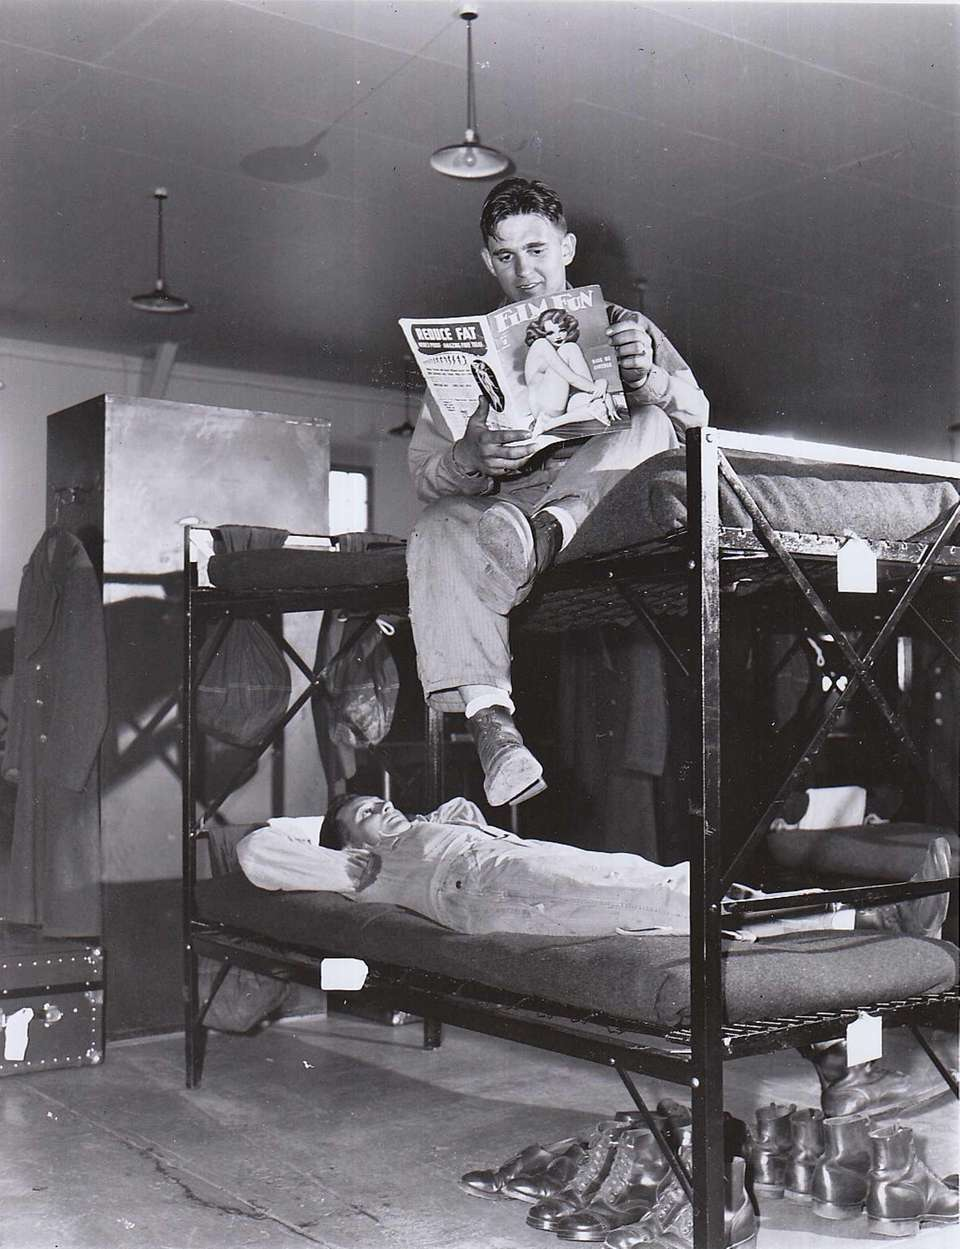 In this 1942 photo, enlisted men spend leisure